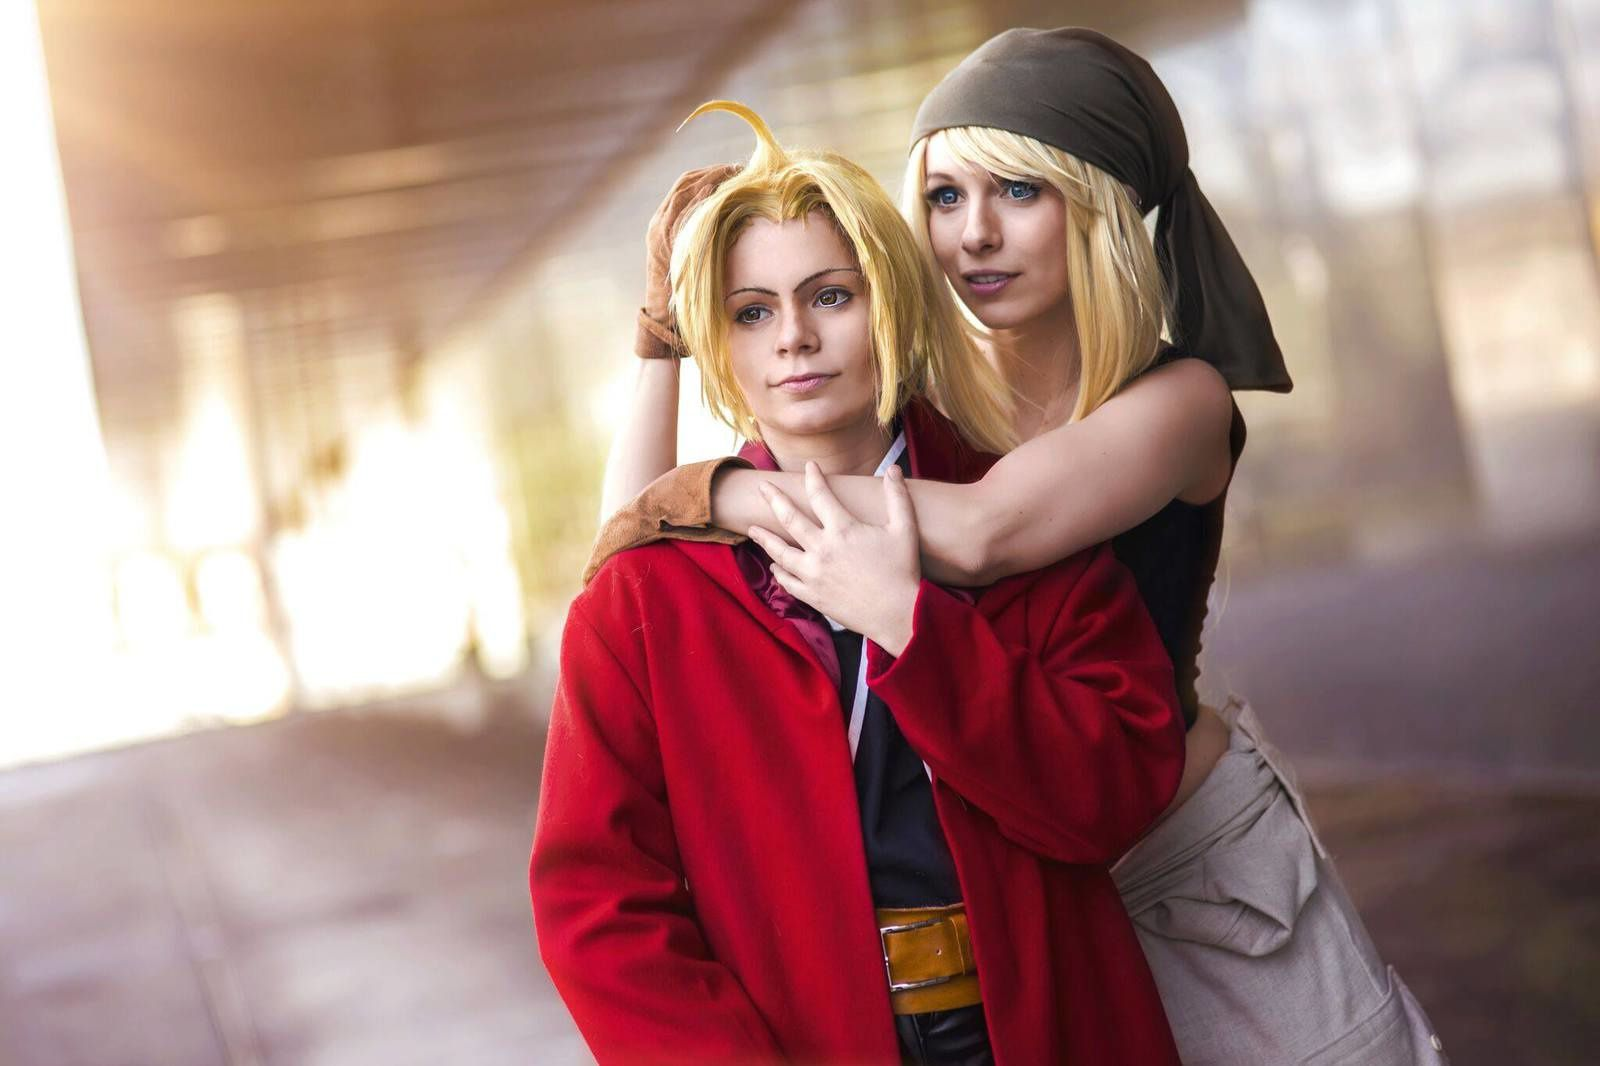 Parle-moi Cosplay #177,5 : Kaali Cosplay